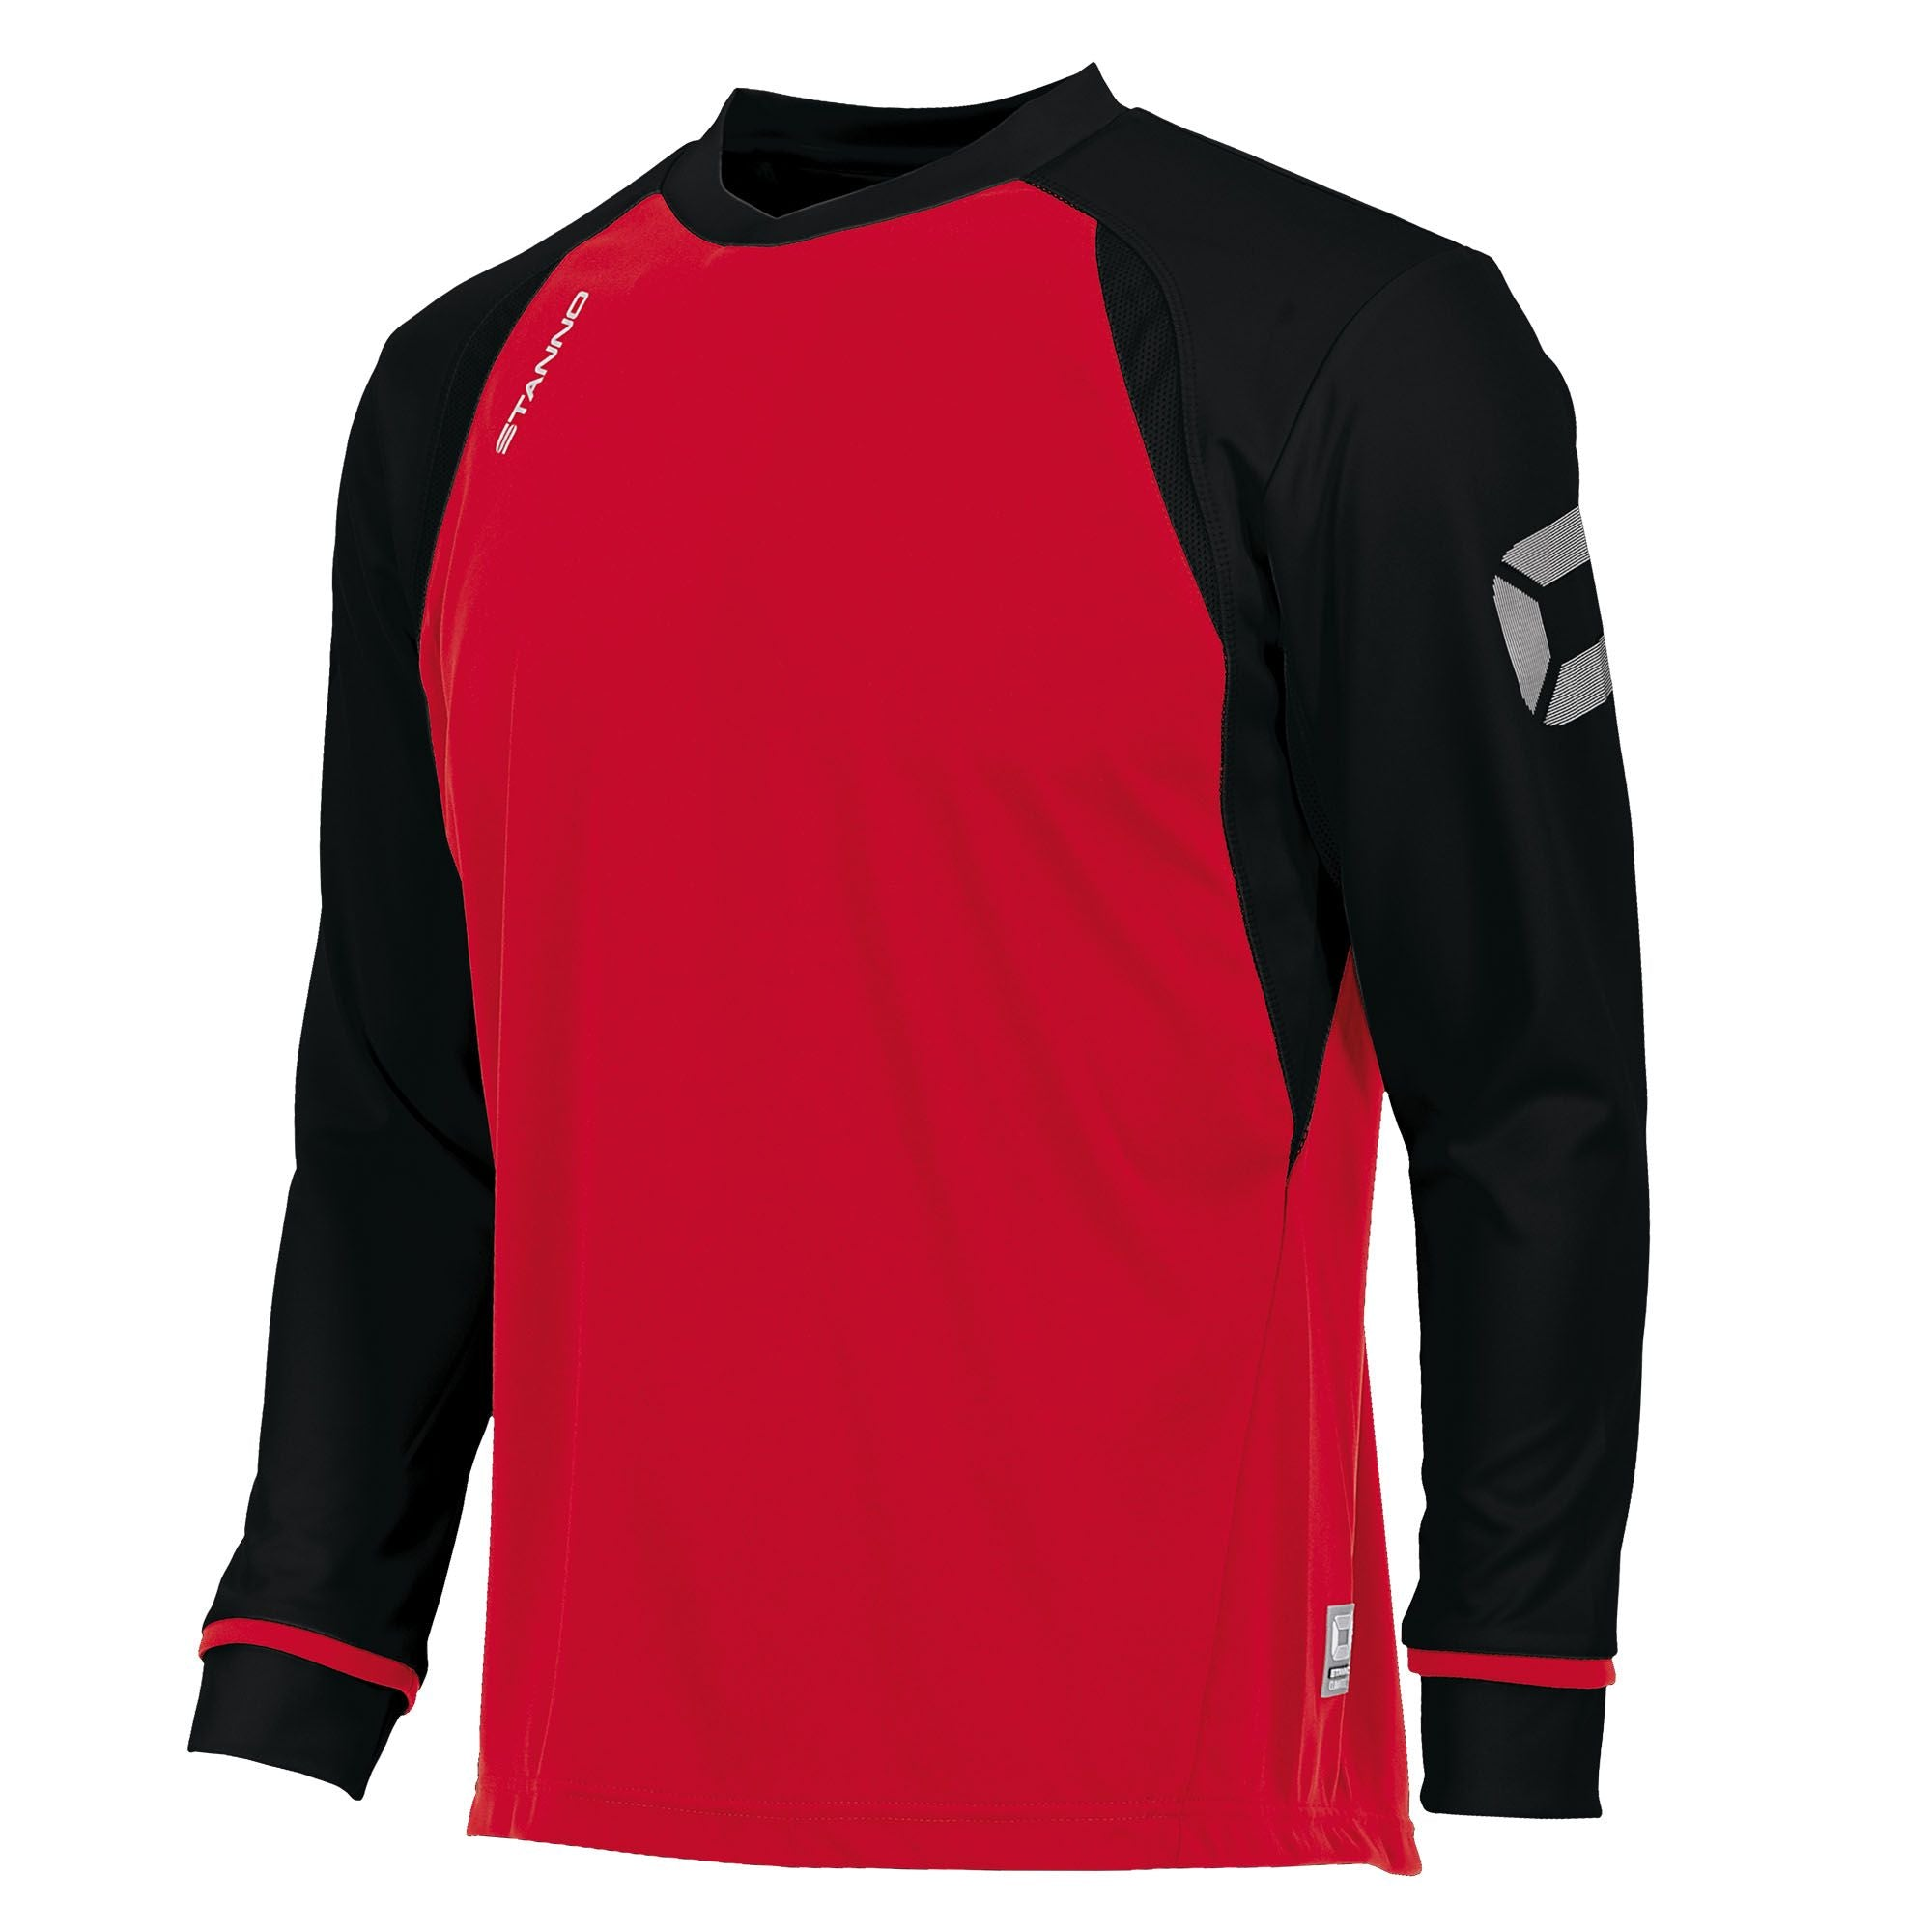 Long sleeved Stanno Liga shirt in red with contrast black sleeves and collar, Stadium logo on the sleeve.